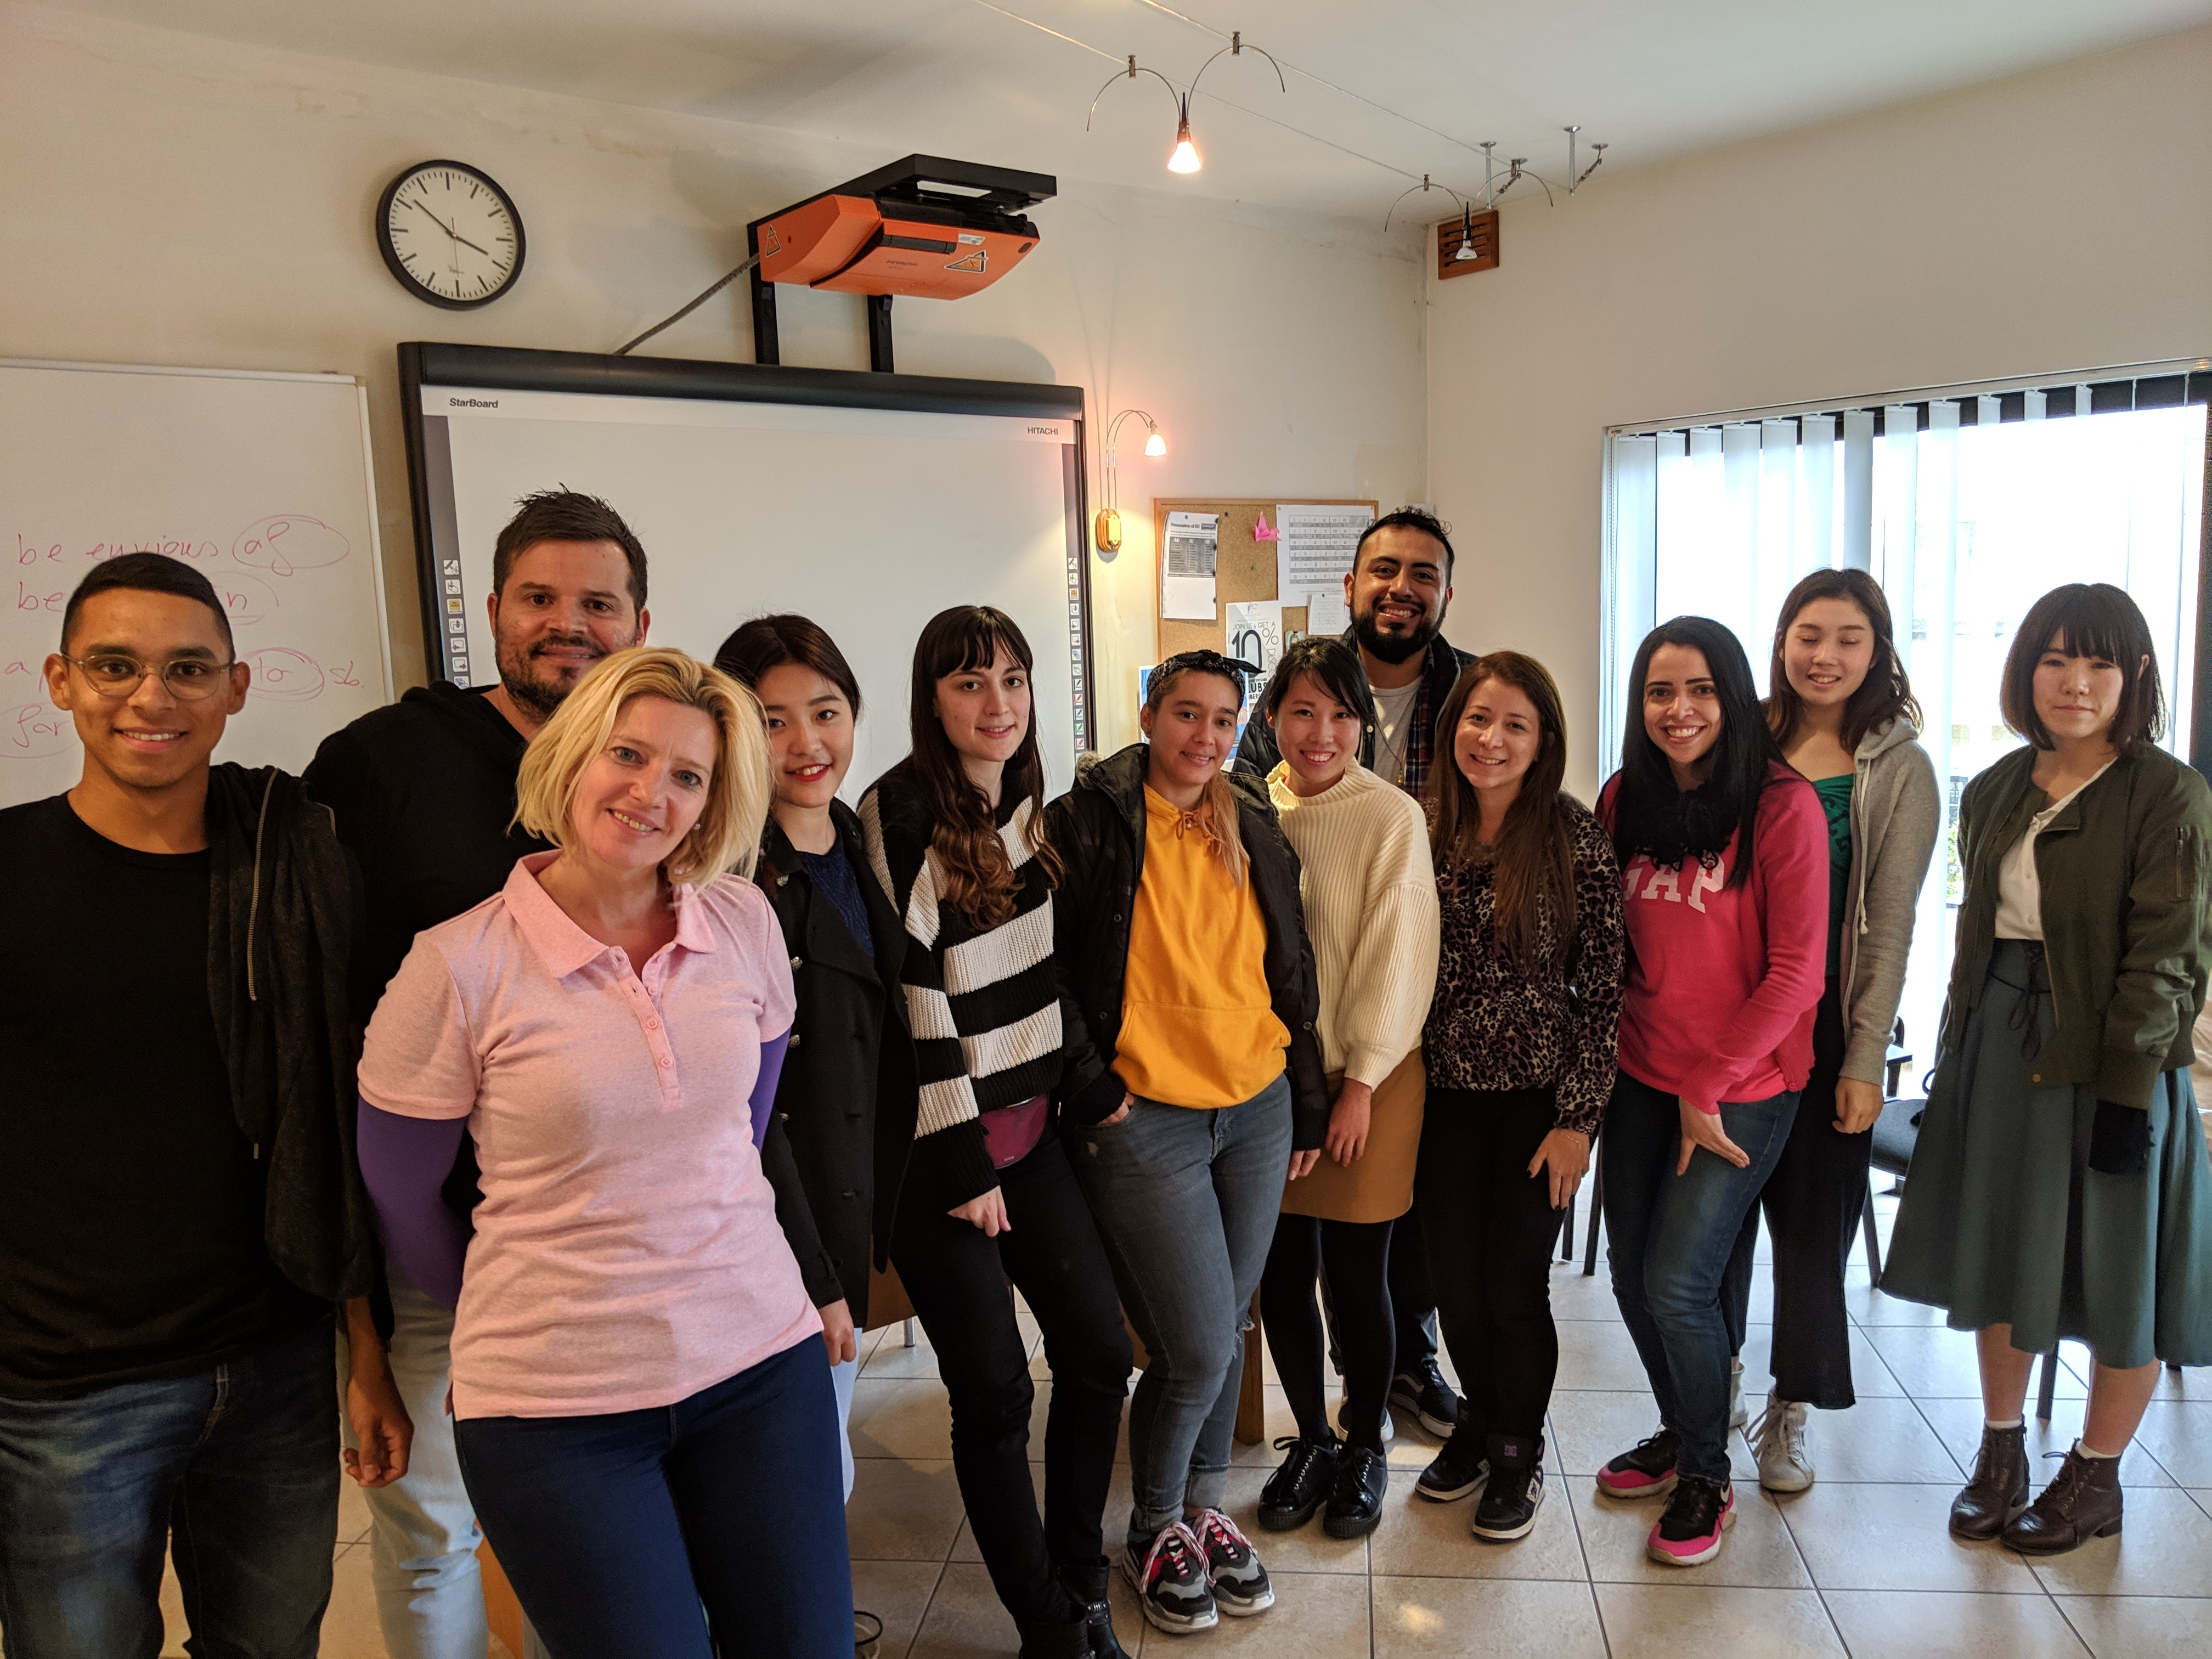 Gateway School of English GSE Cours d'anglais général en groupe Corso di gruppo di inglese generale Allgemeiner Englisch Gruppenkurs Ogólny kurs angielskiego dla grup